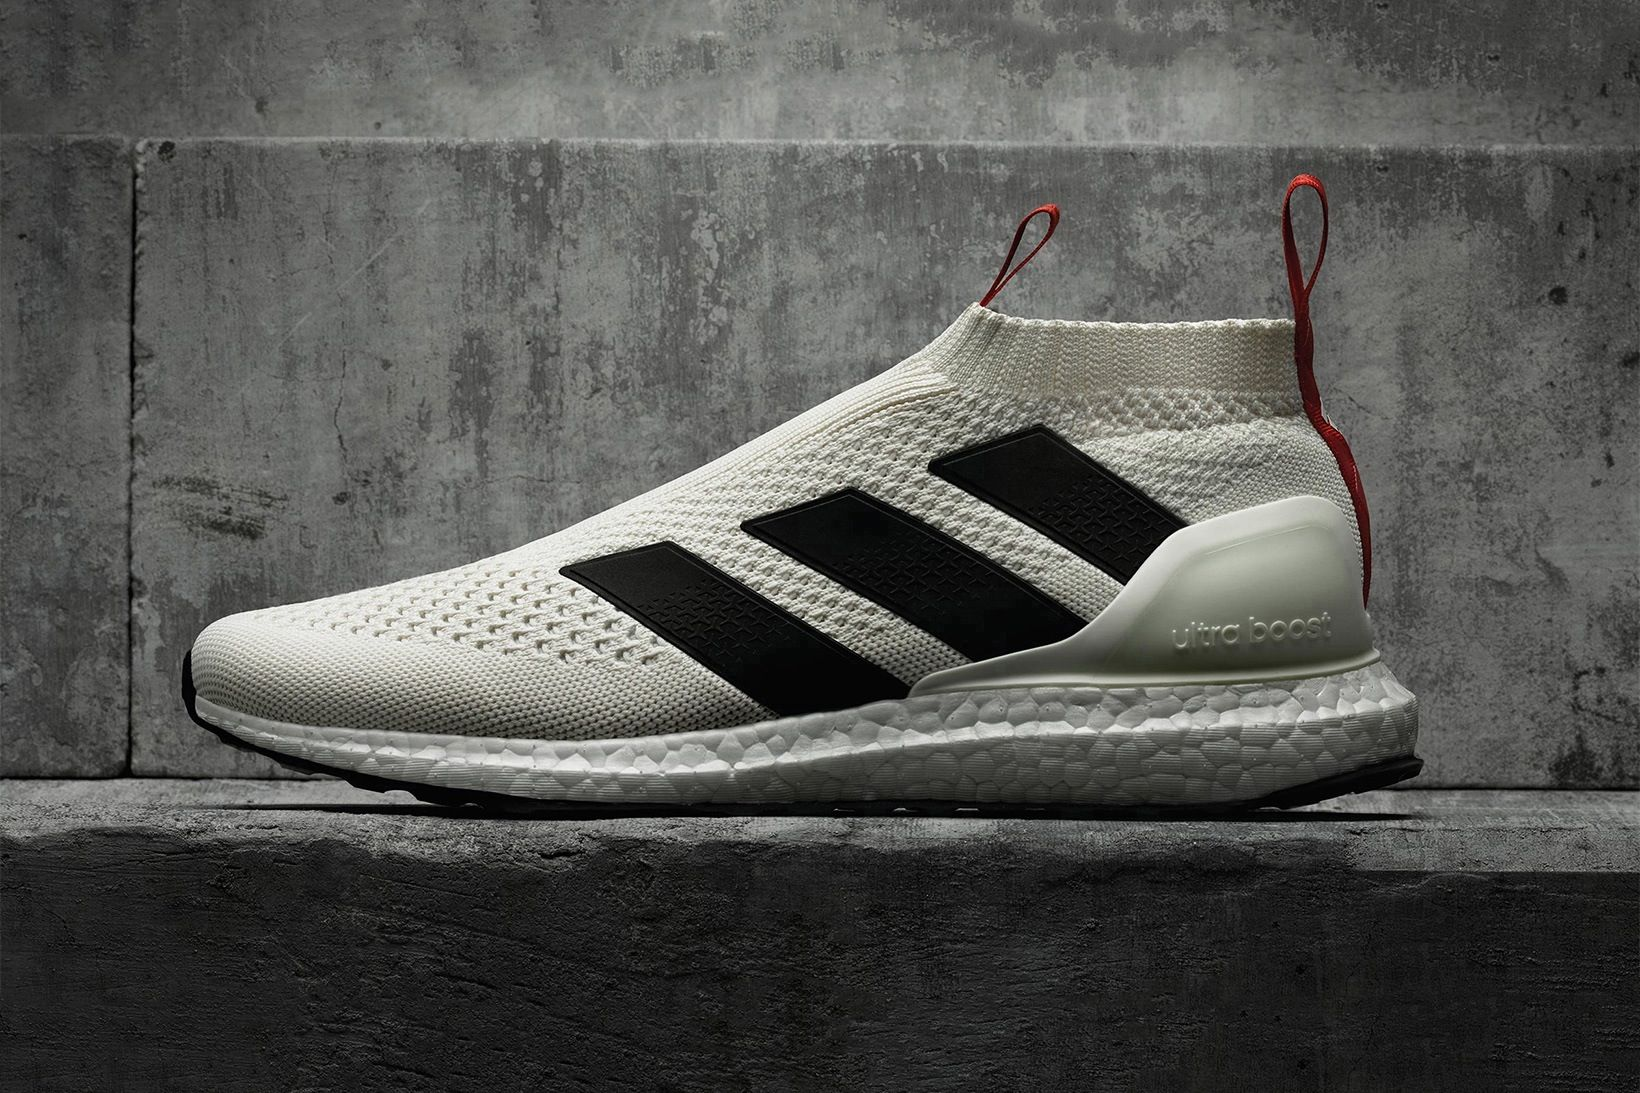 adidas's Latest ACE 16+ Ultra Boost Is a